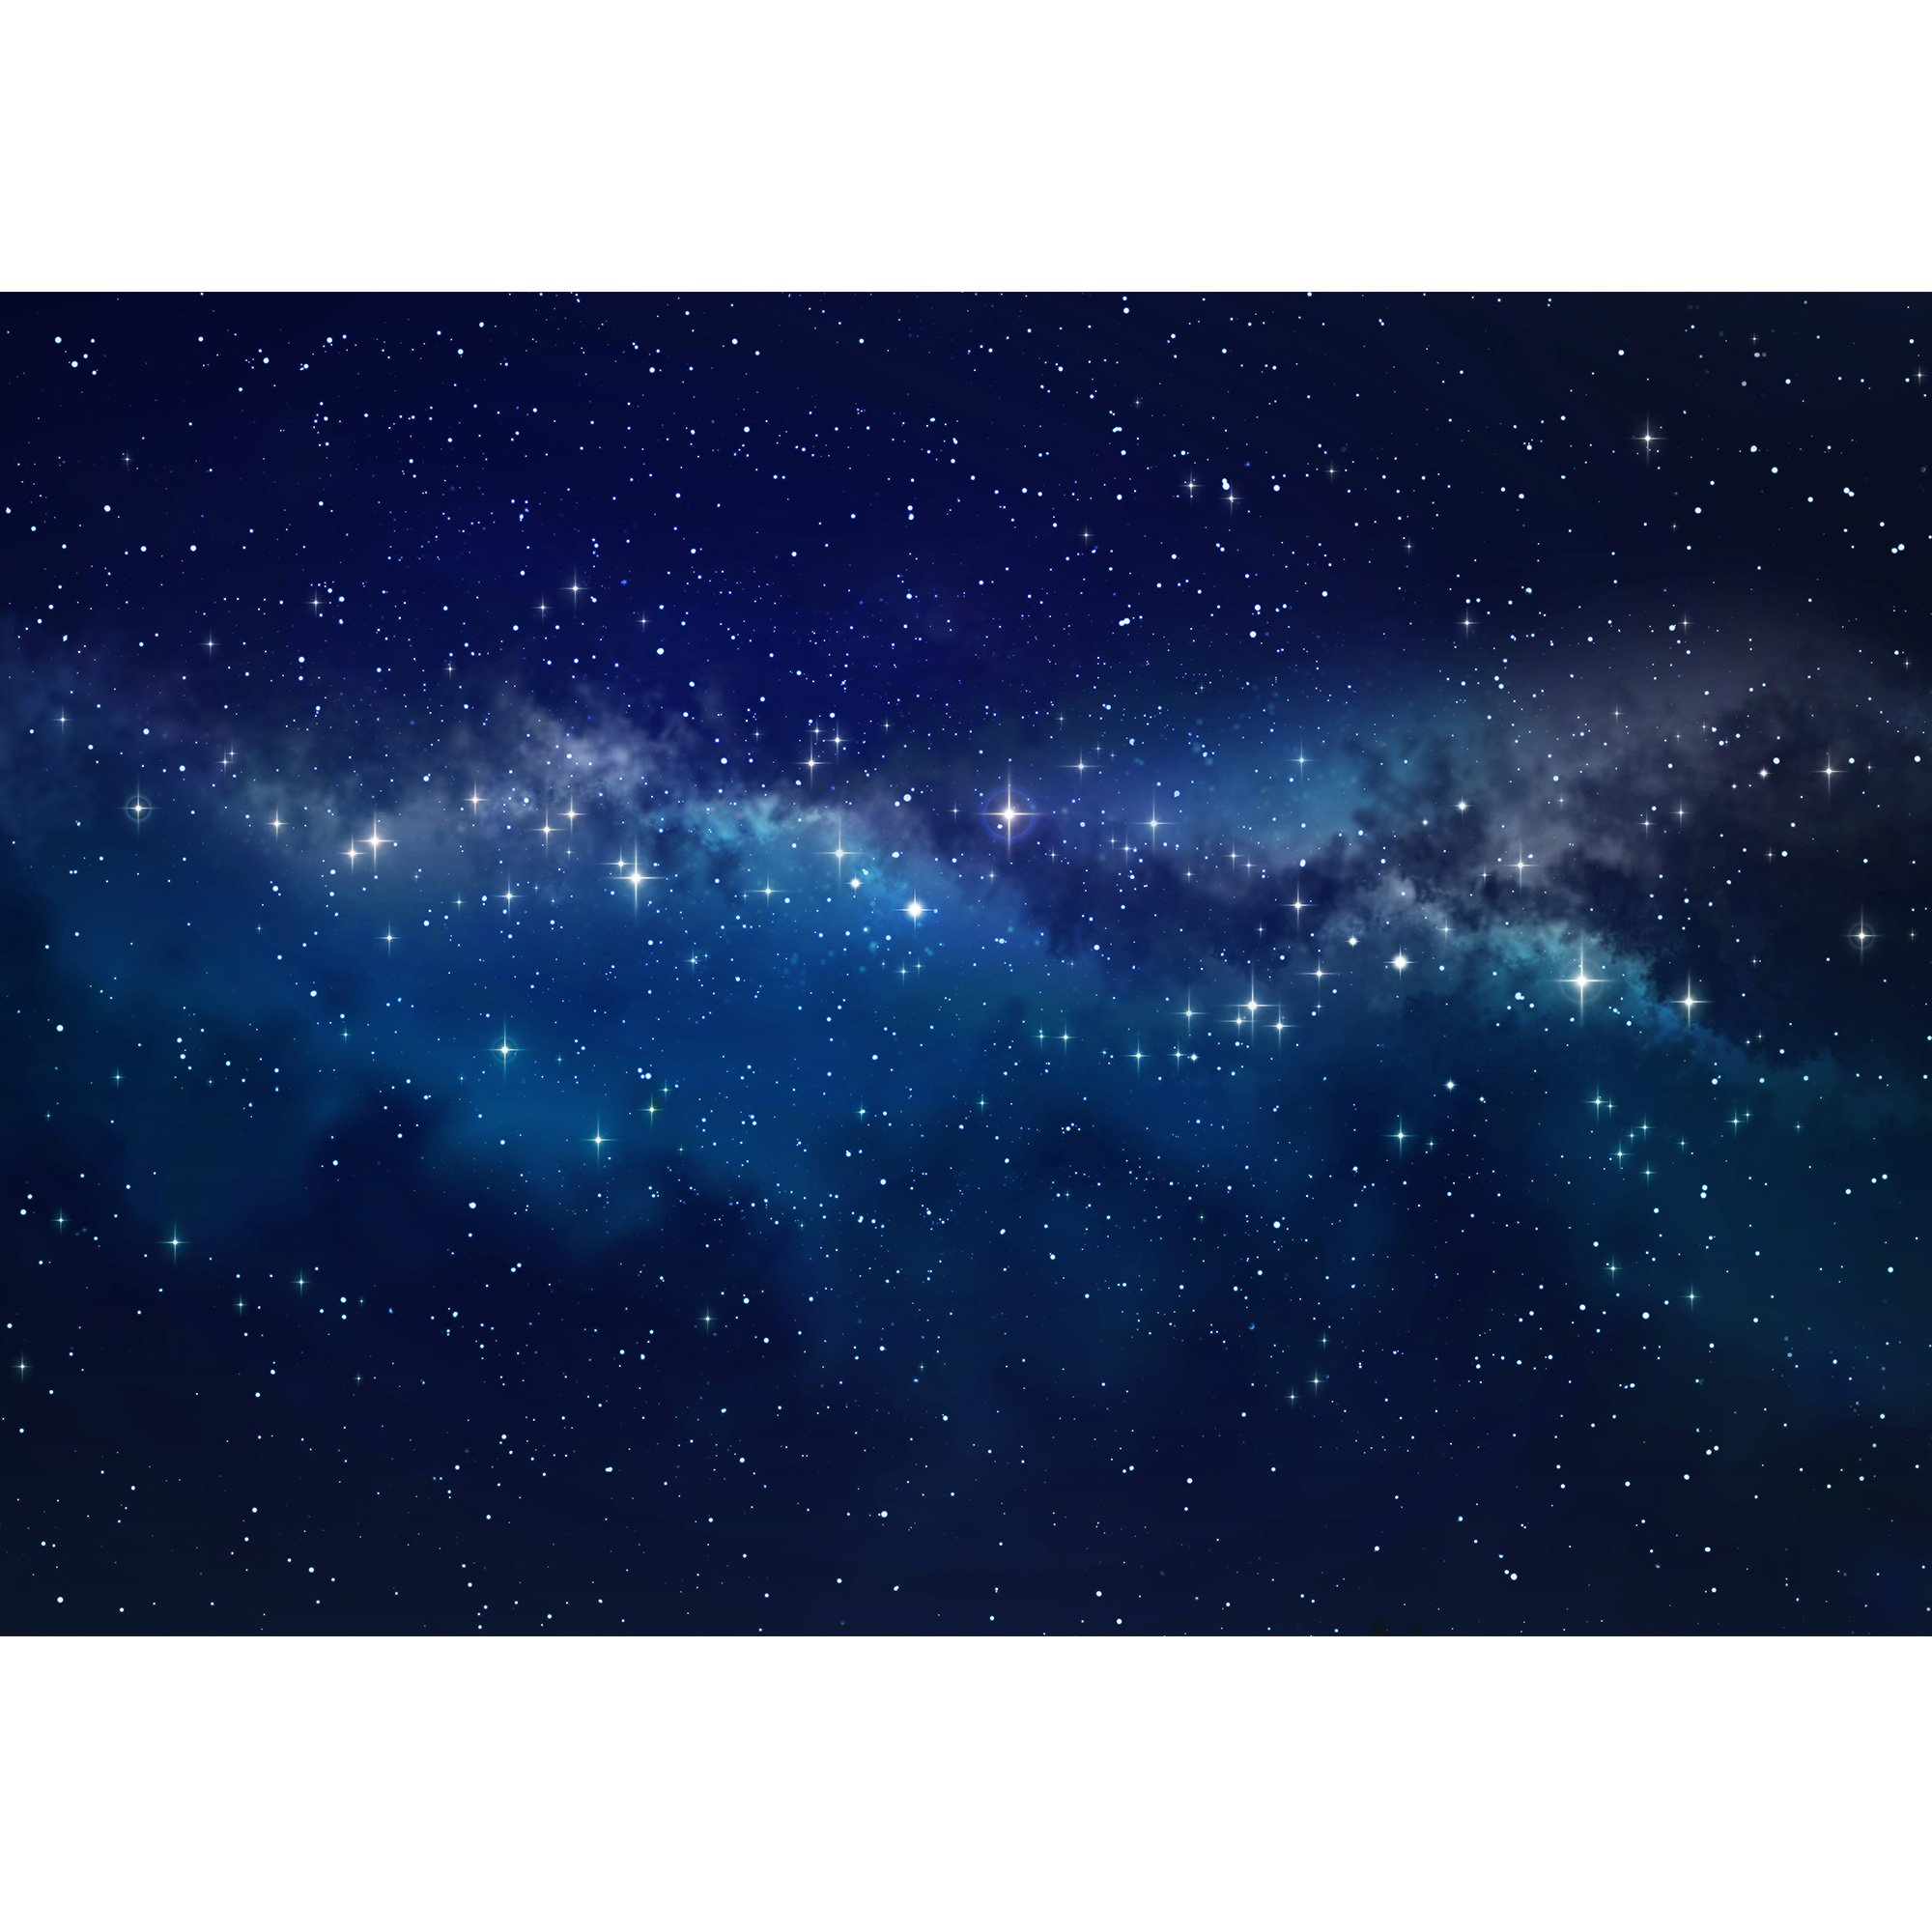 Wall26 Deep Space High Definition Star Field Background Removable Wall Mural Self Adhesive Large Wallpaper 100x144 Inches Amazon Com